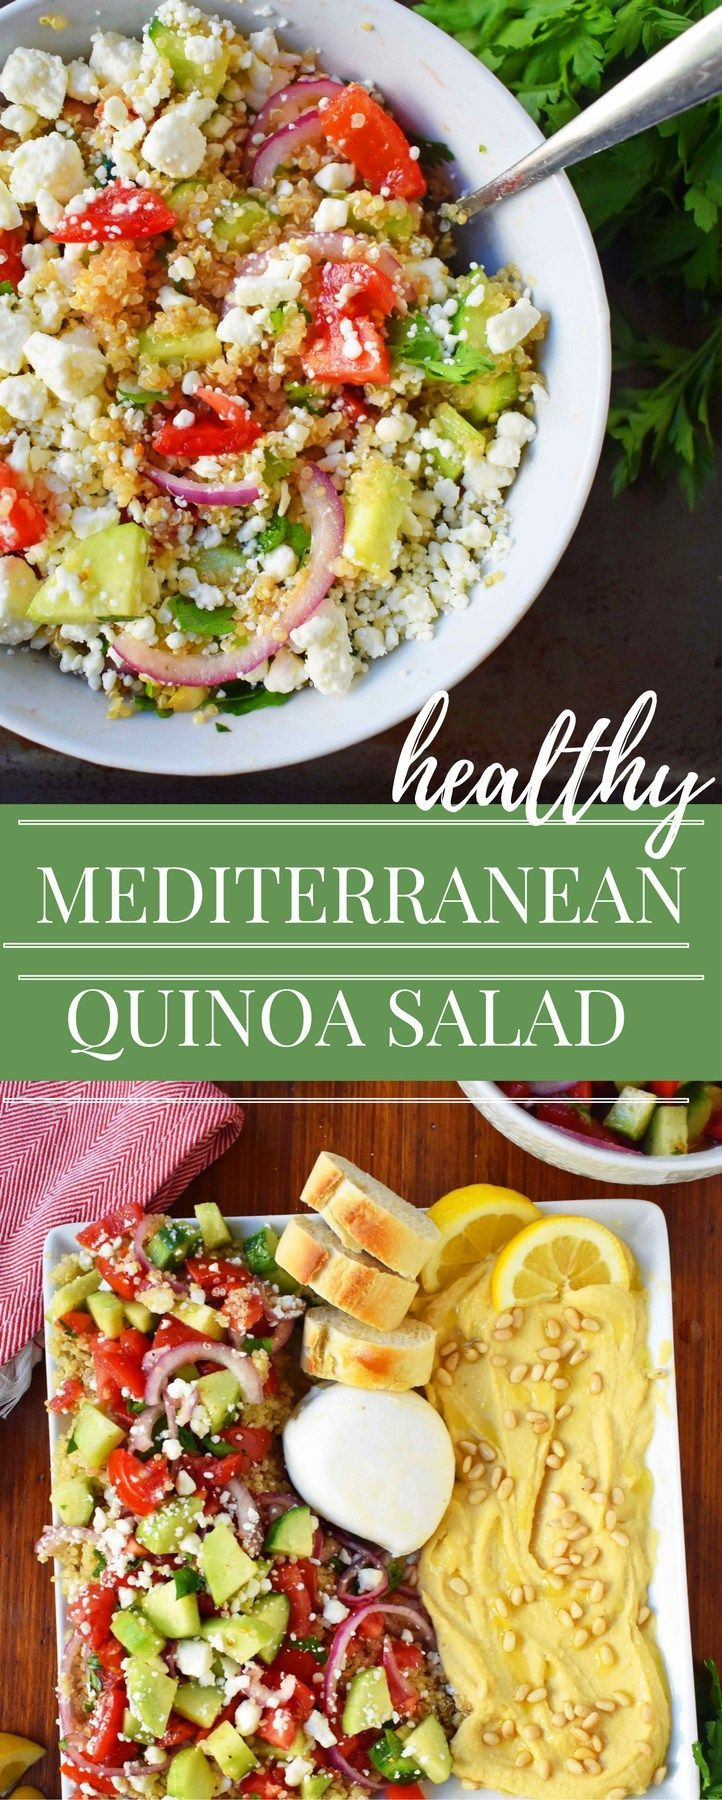 Mediterranean Quinoa Salad. Quinoa tossed with fresh tomatoes, cucumber, red onion, italian parsley, extra virgin olive oil, red wine vinegar, and feta cheese. A healthy, beautiful salad! www.modernhoney.com